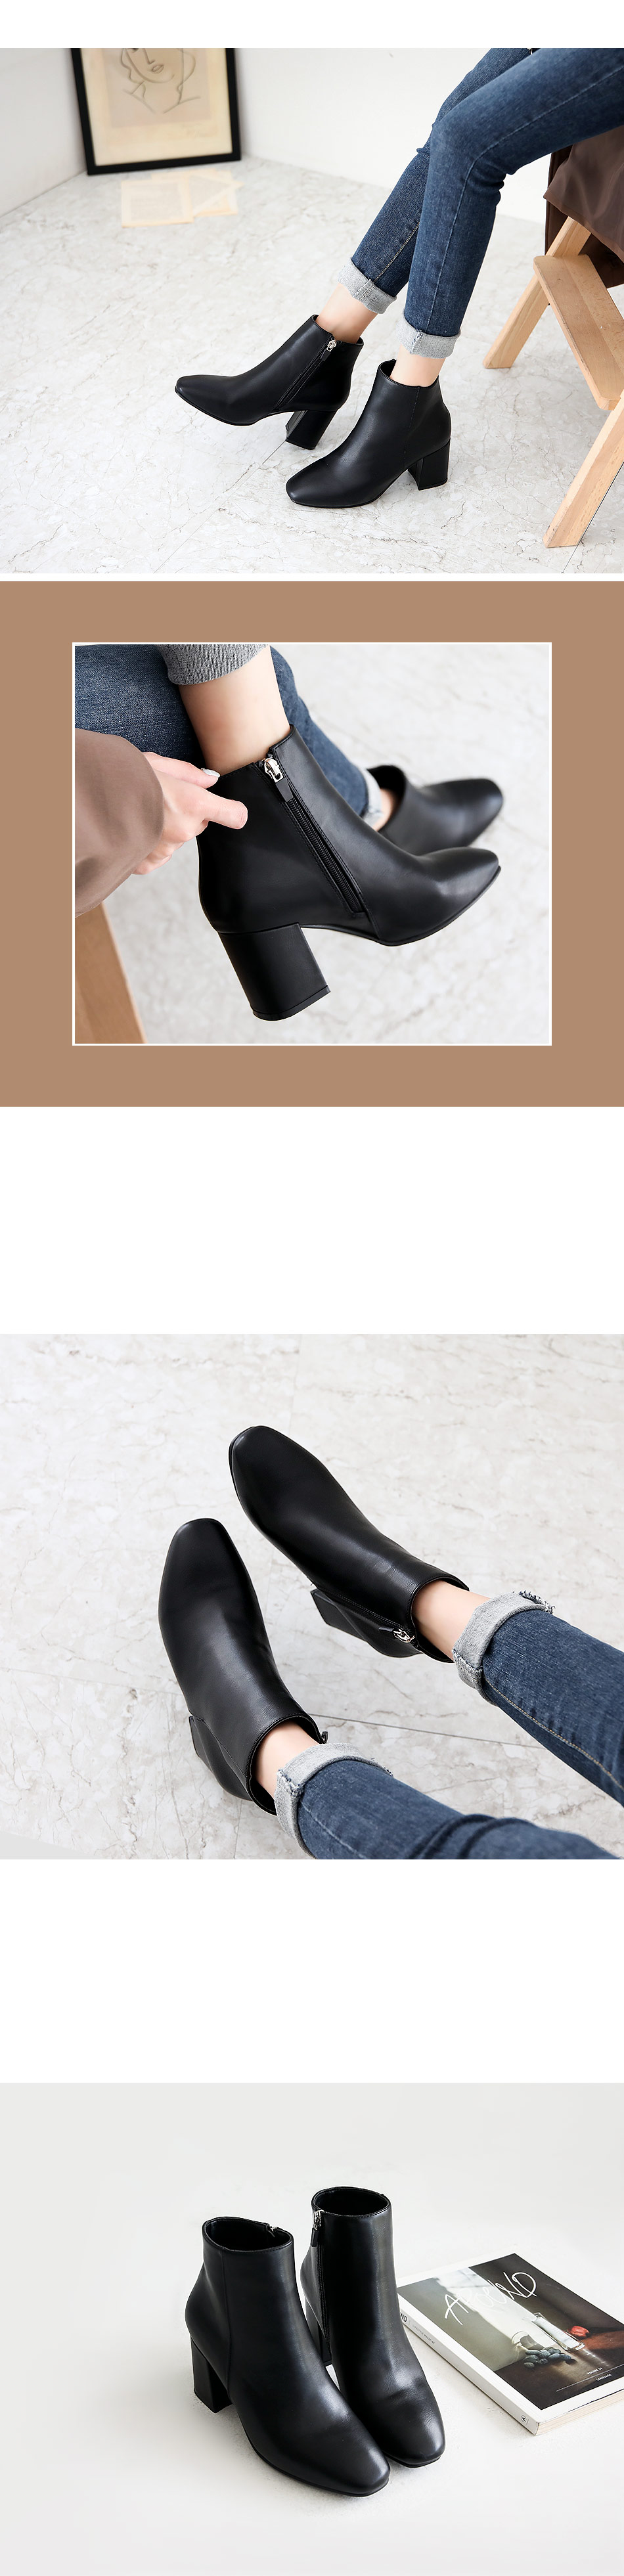 Okens Ankle Boots 7cm